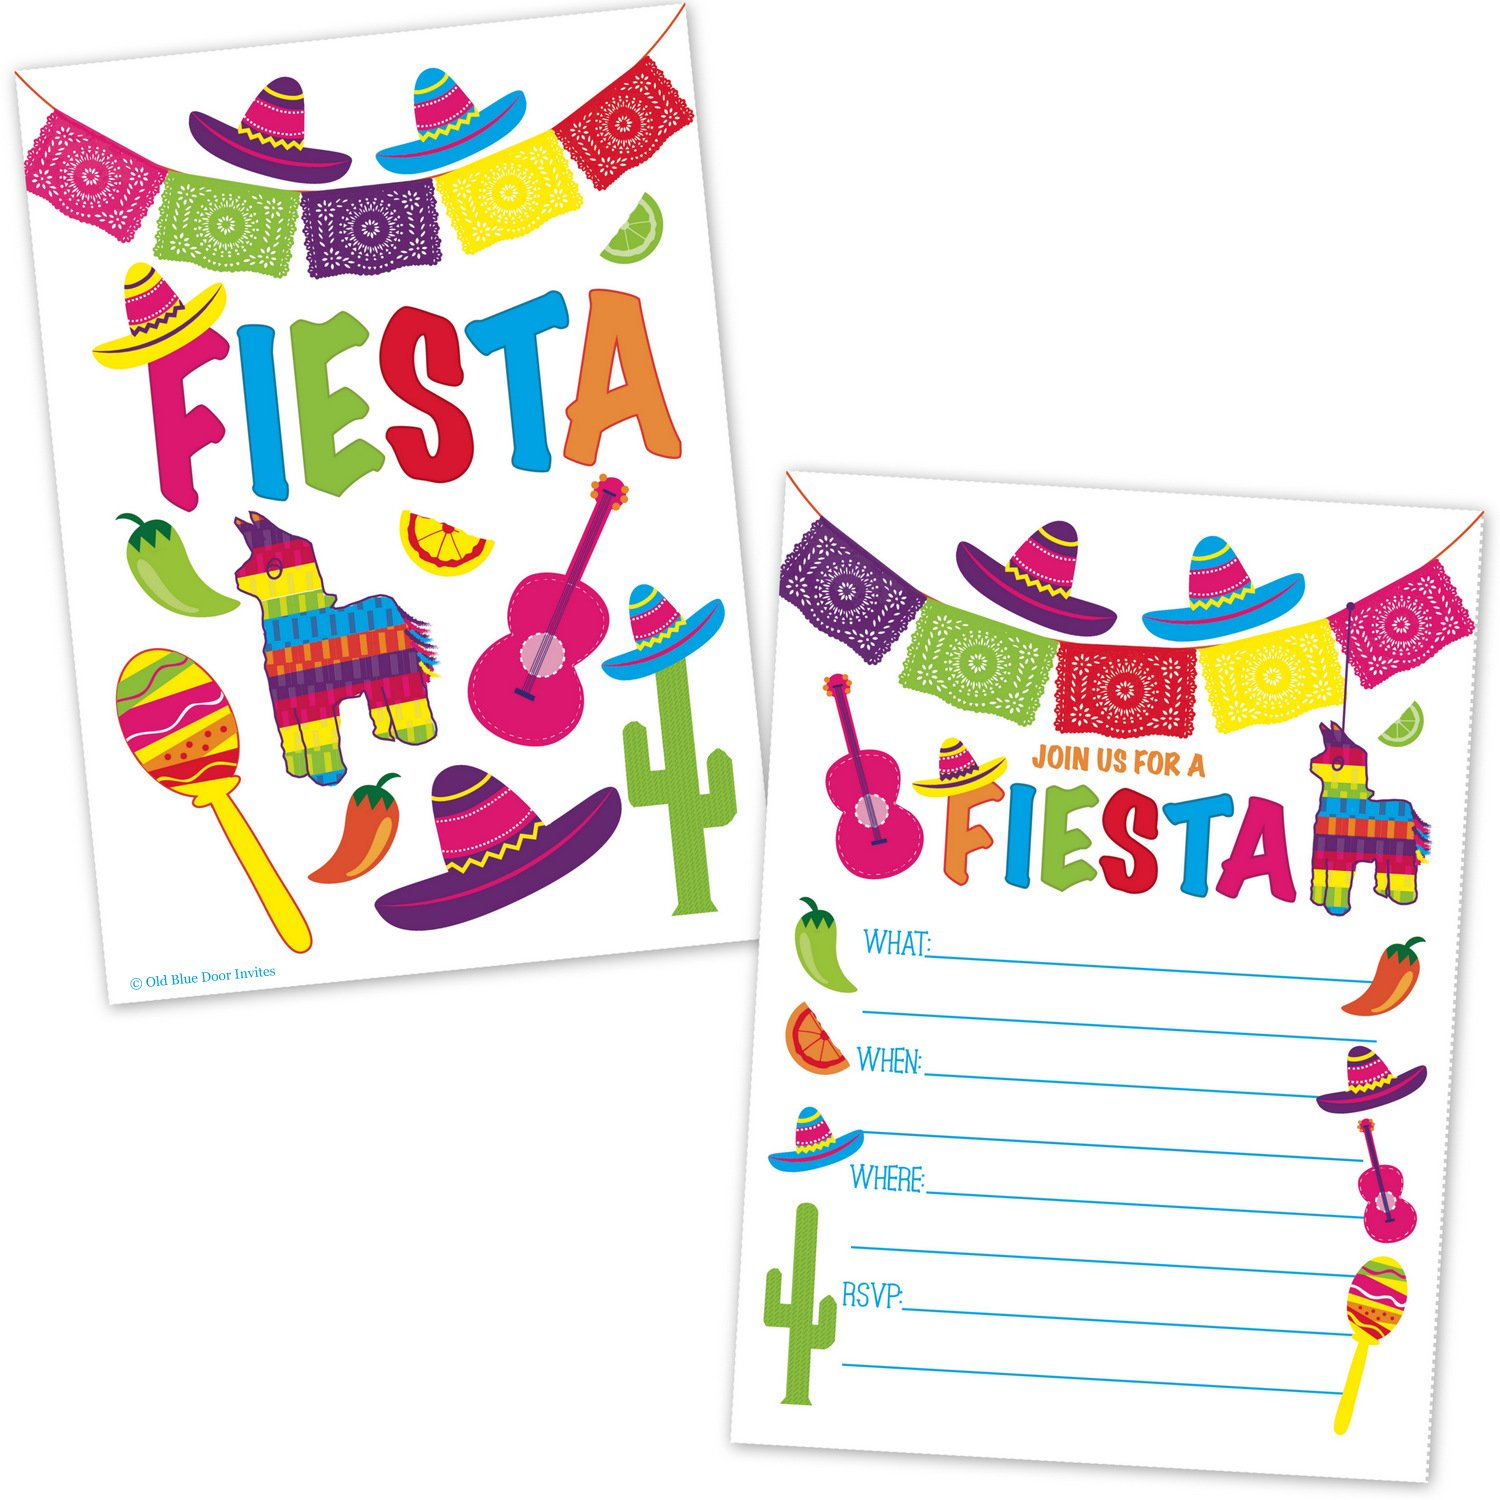 Amazon.com: Fiesta Party Invitations - Fill in the Blank Style ...